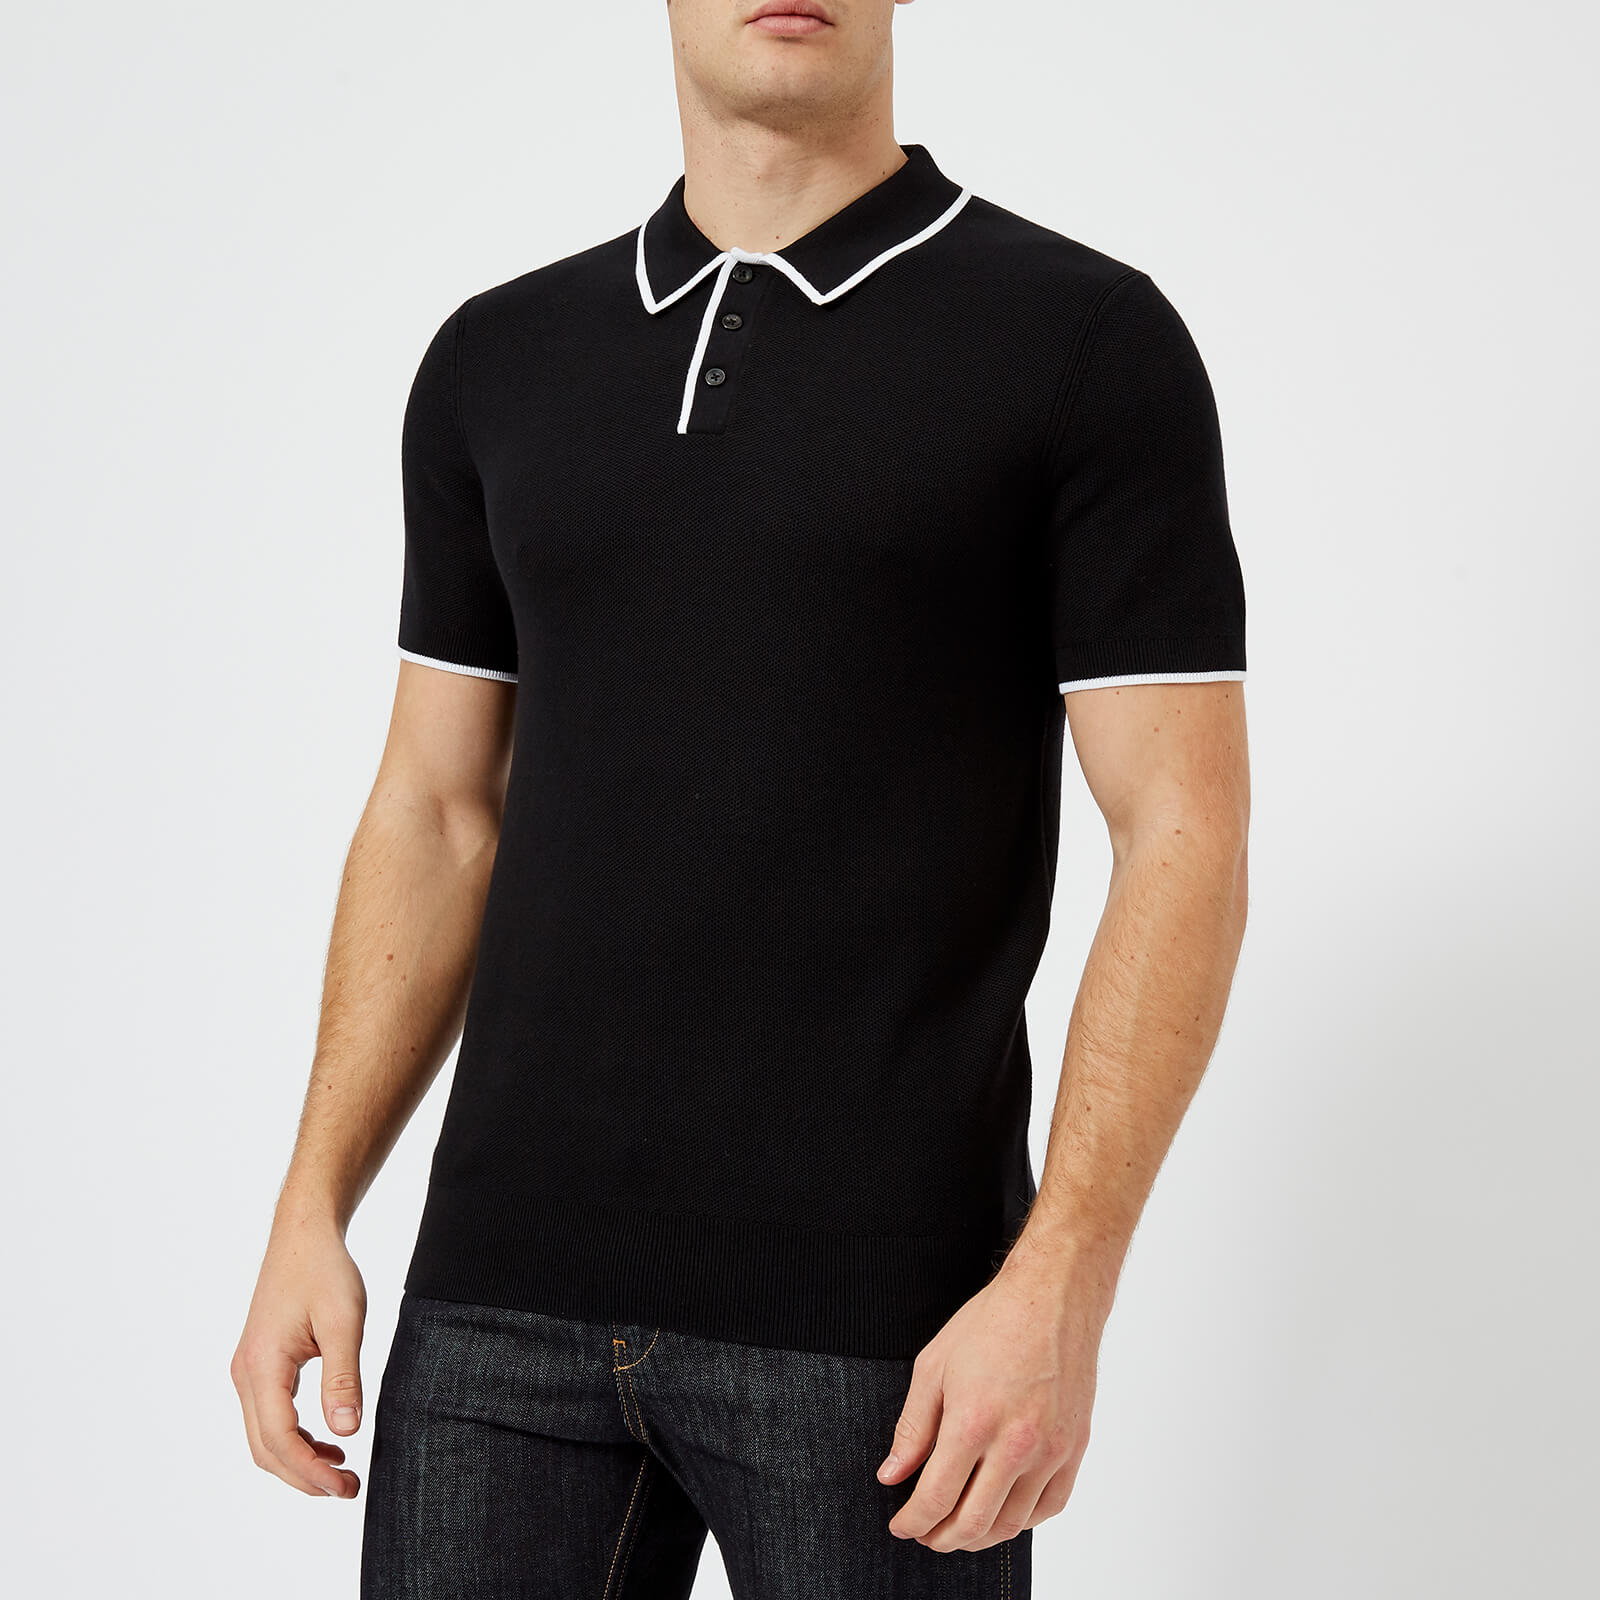 d0dd3998 ... Michael Kors Men's Tipped Supima Cotton Tuck Stitch Knitted Polo Shirt  - Black